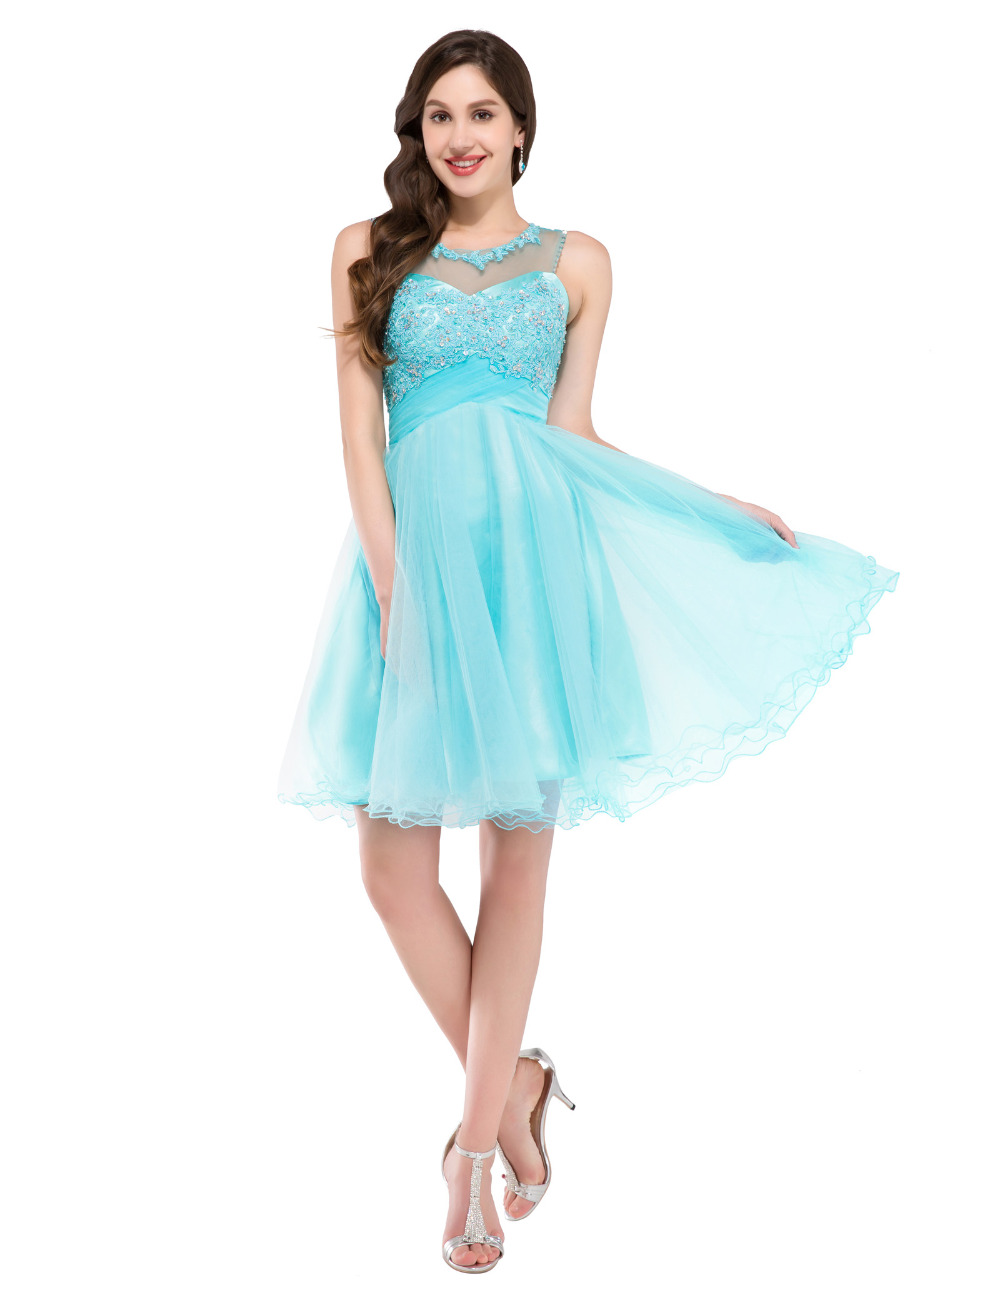 Blue Short Prom Dresses Ball Gown | Dress images